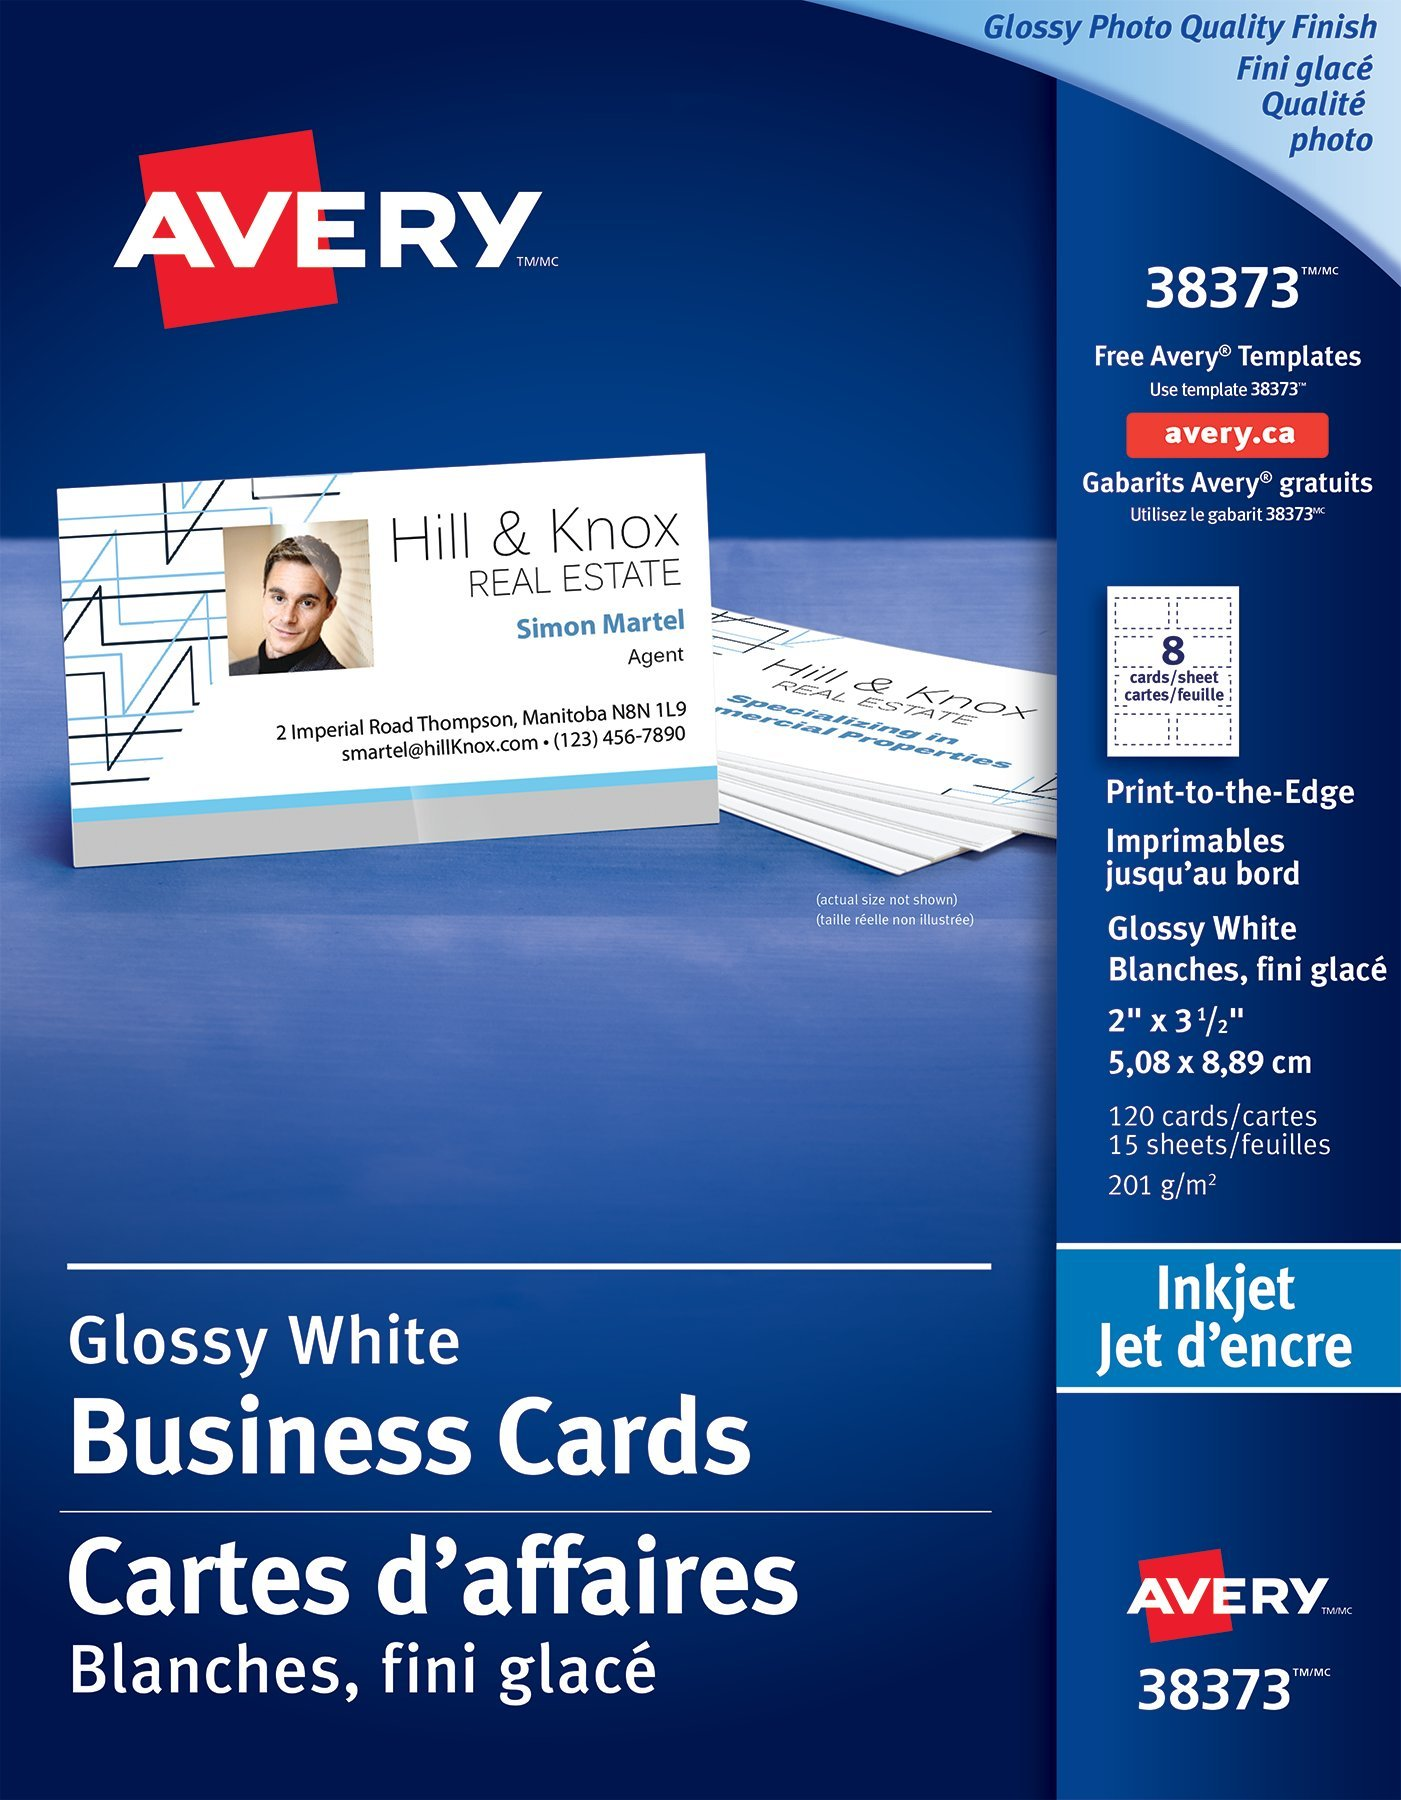 Business cards make your own online custom business card avery glossy photo quality business cards 38373 2 x 3 rectangle reheart Images